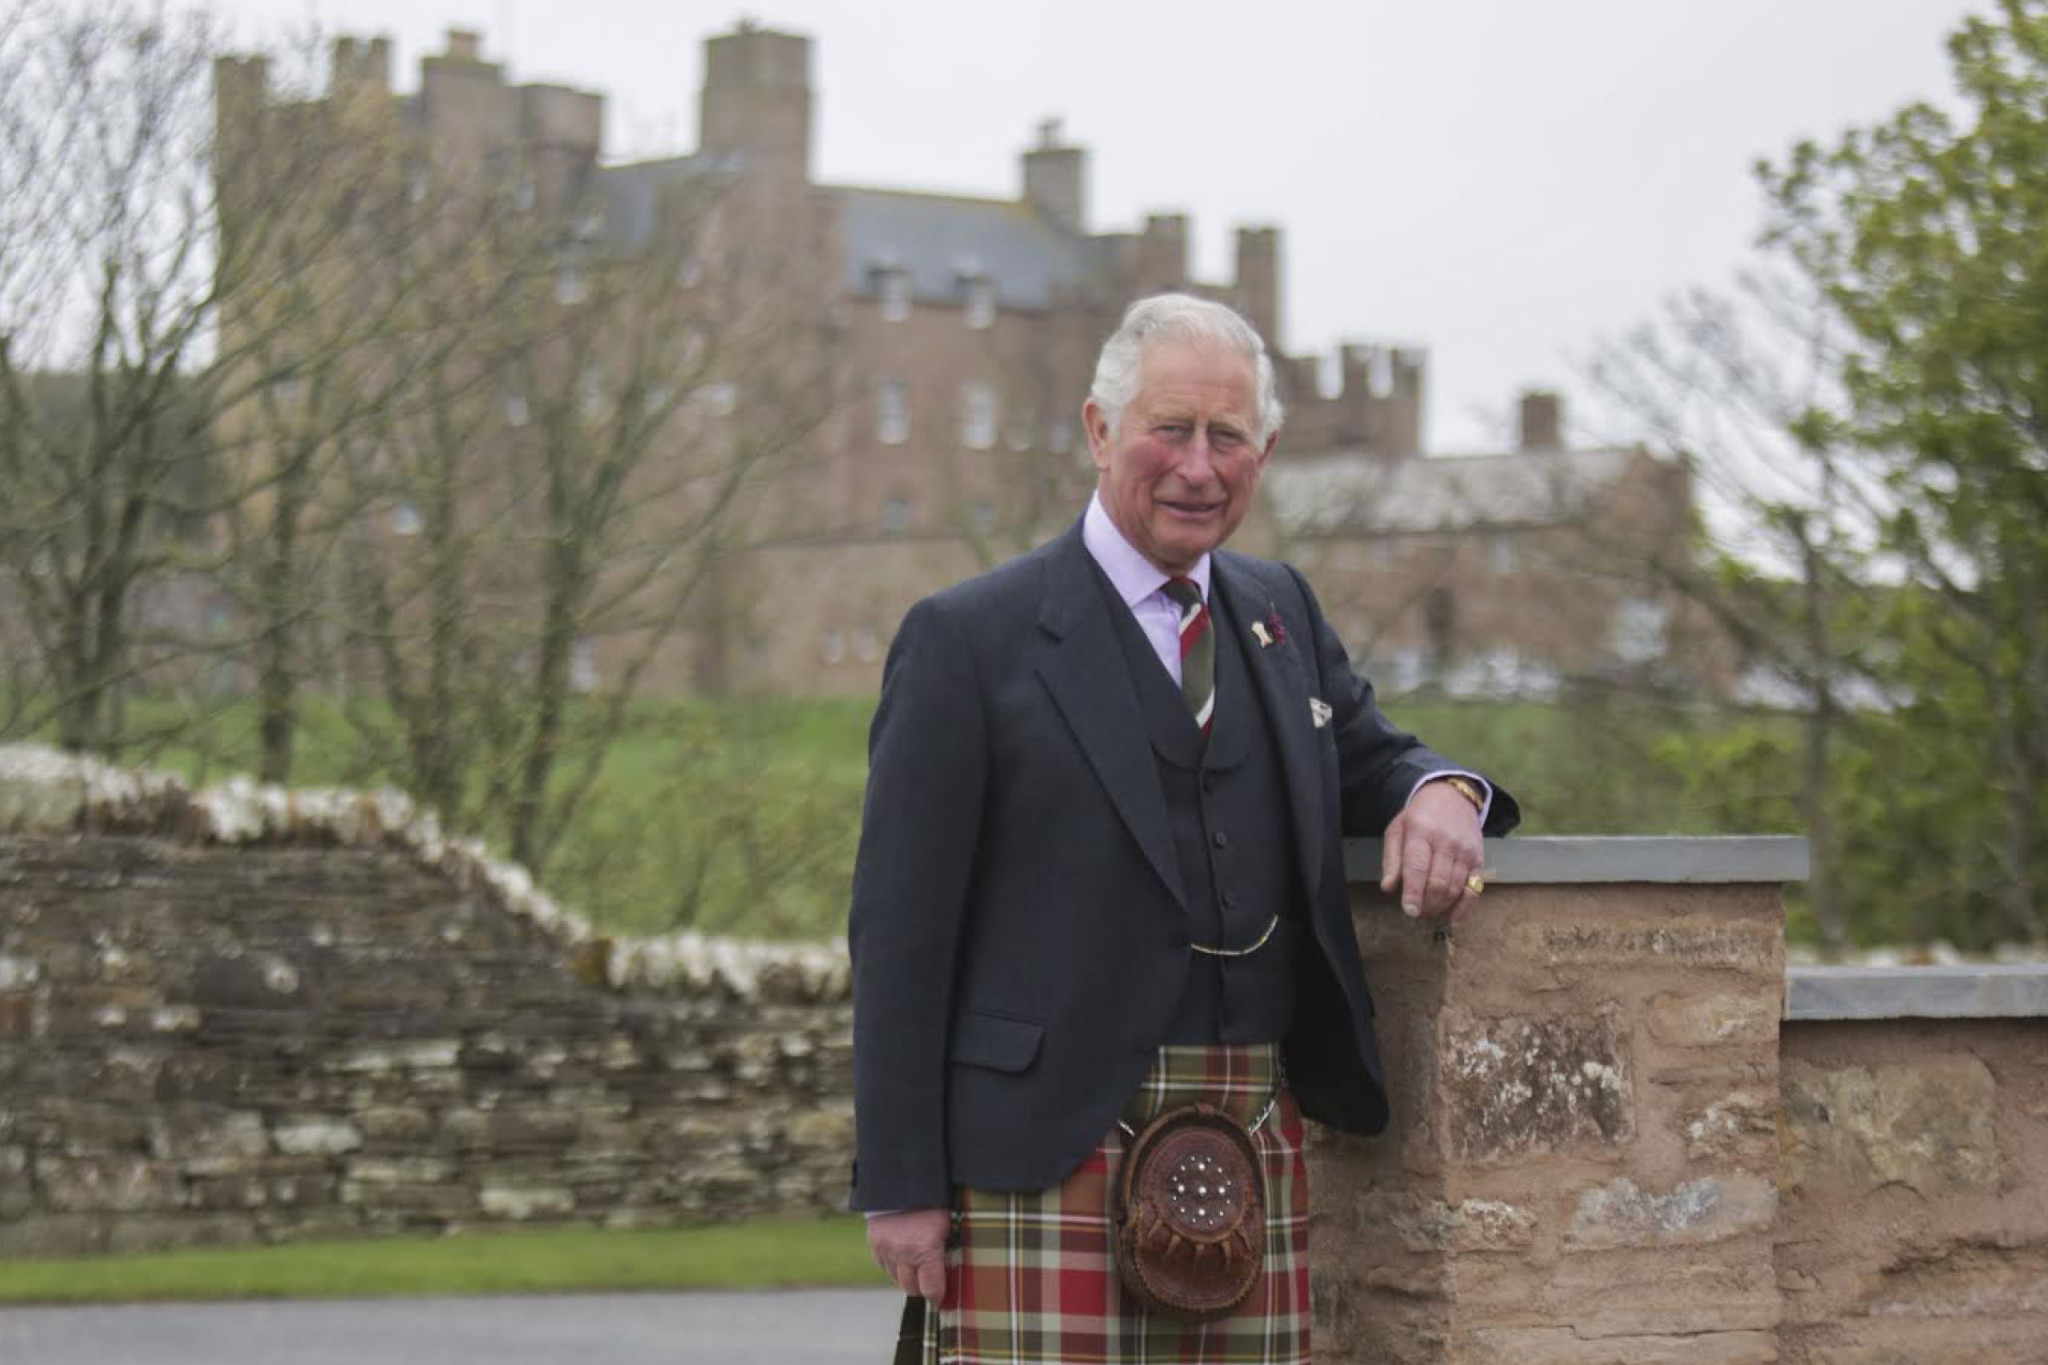 Image of HRH Prince Charles wearing a kilt with the castle of mey in the distance